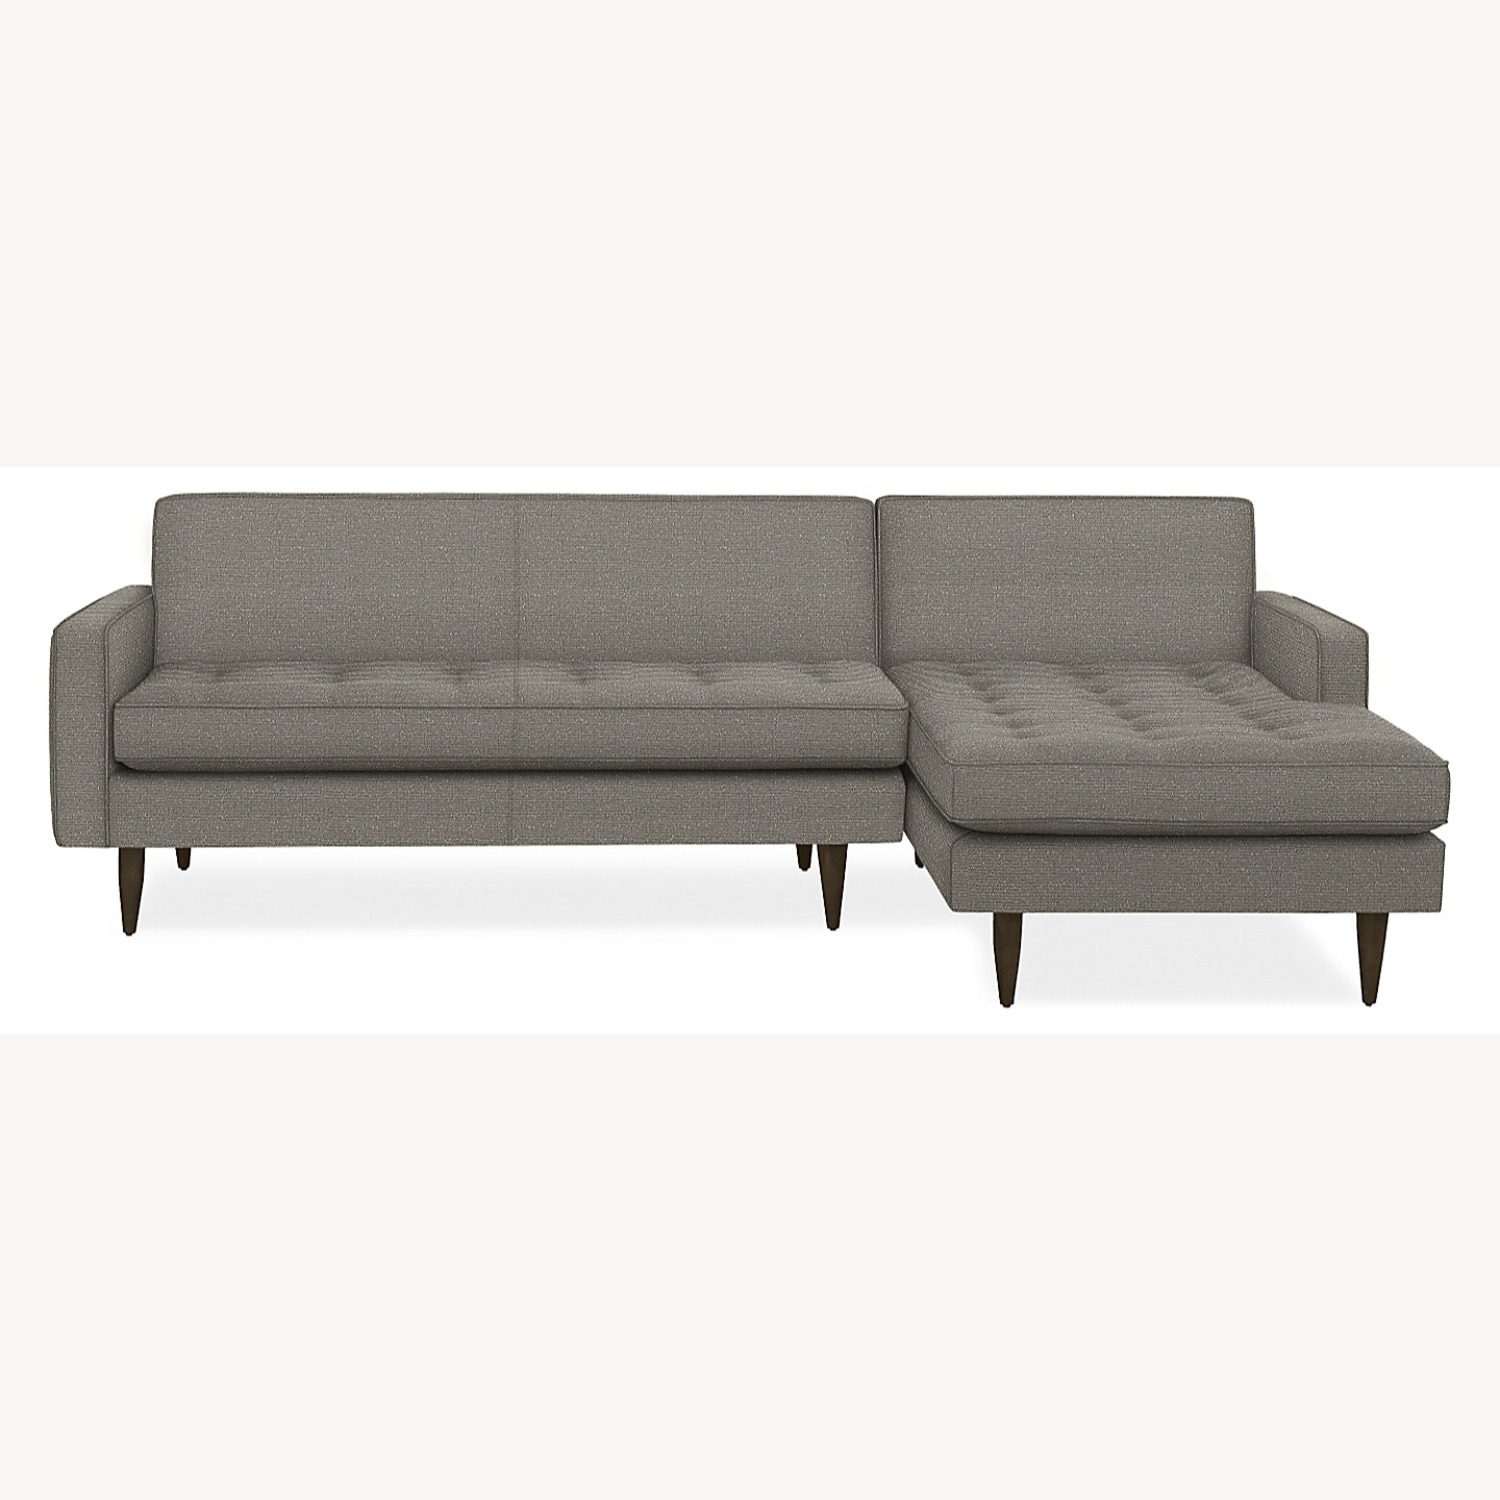 Room & Board Reese Right-Arm Chaise - image-0